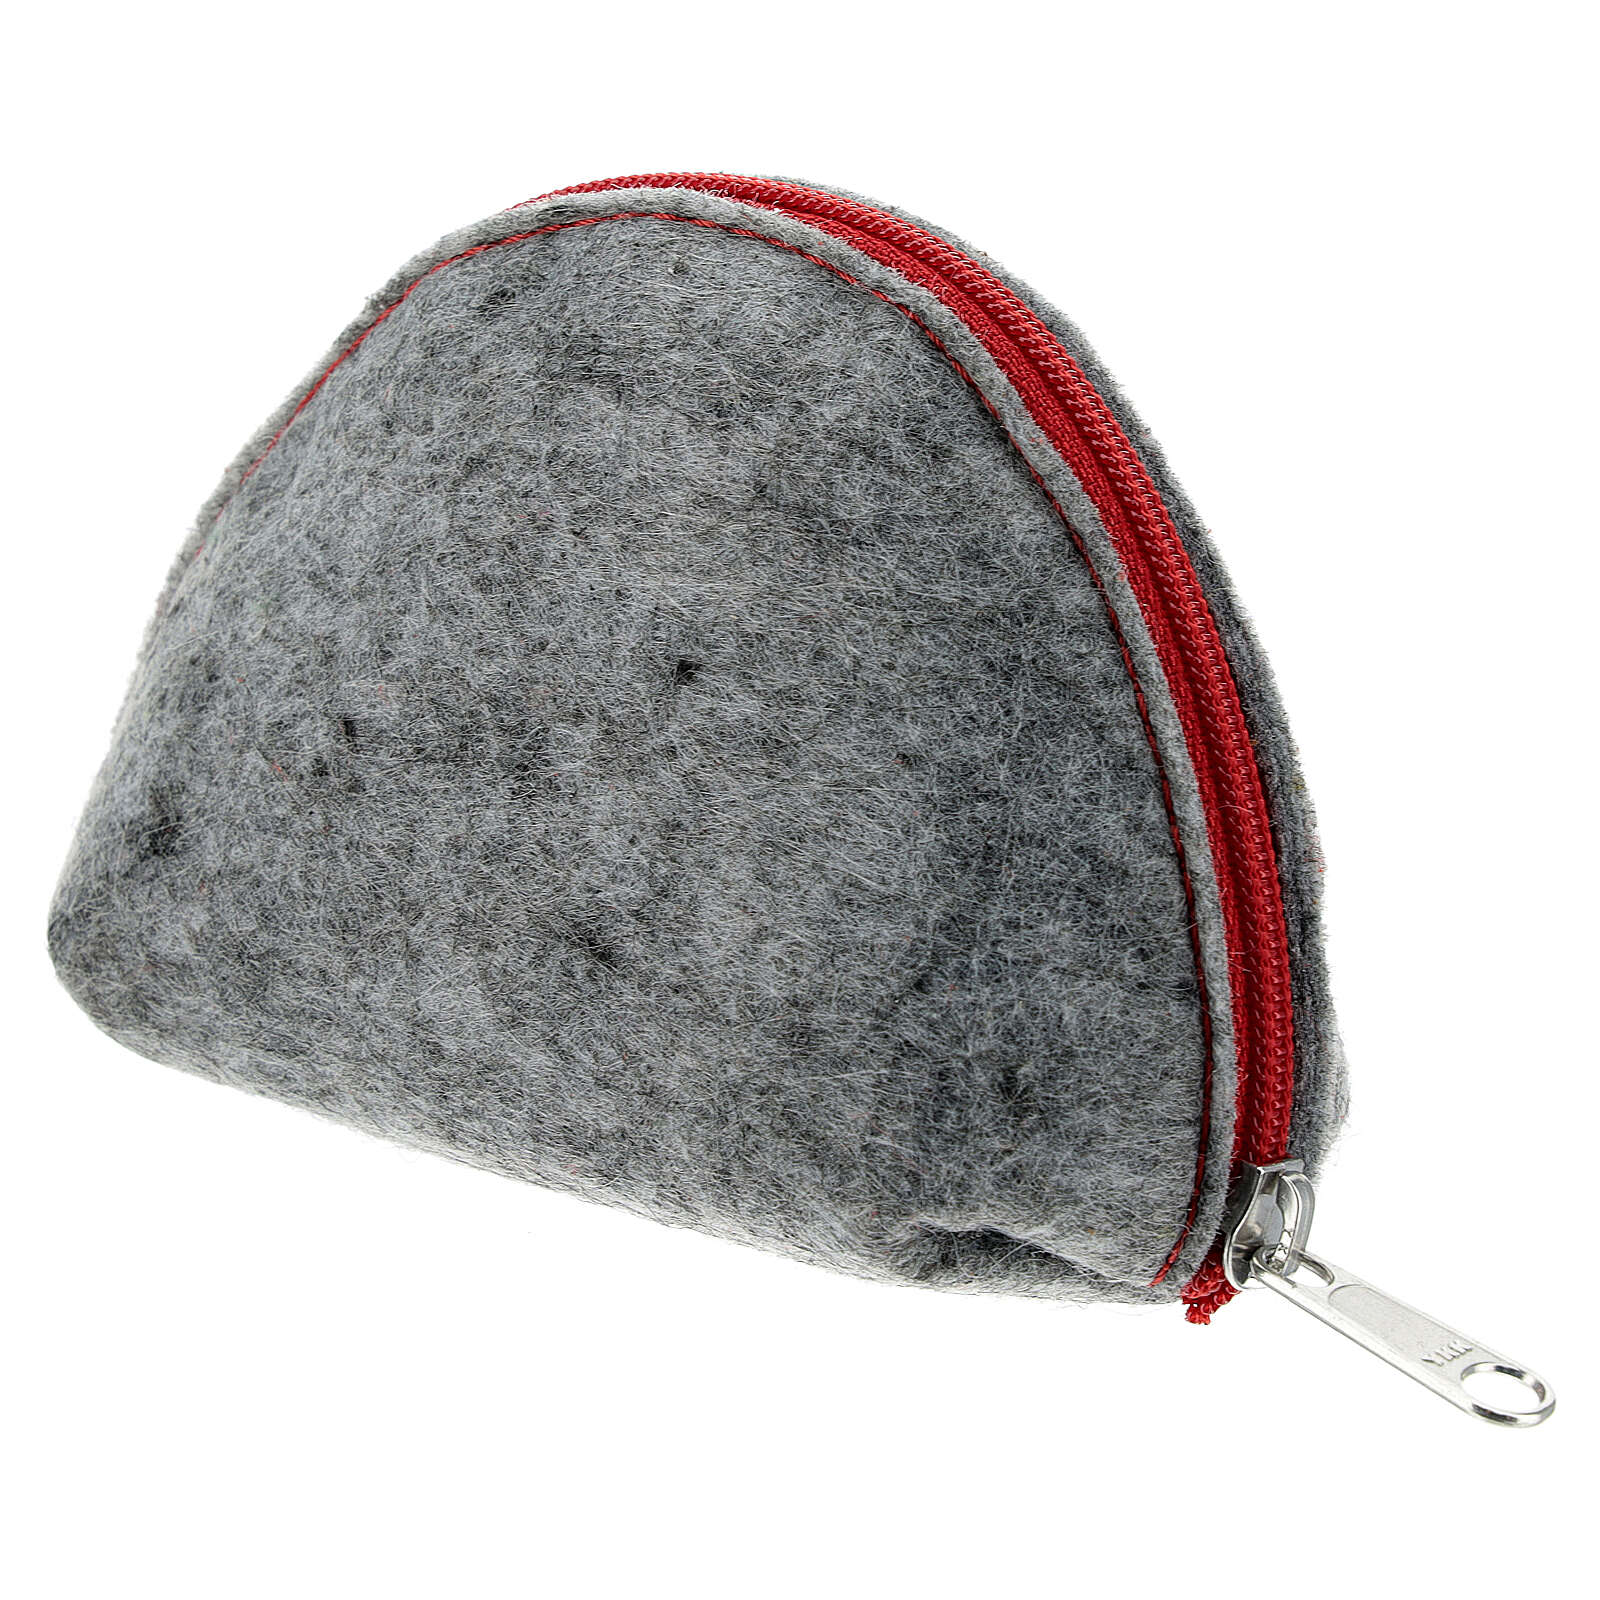 Immaculate Virgin rosary case grey felt and red leather 3x4x2 in 4